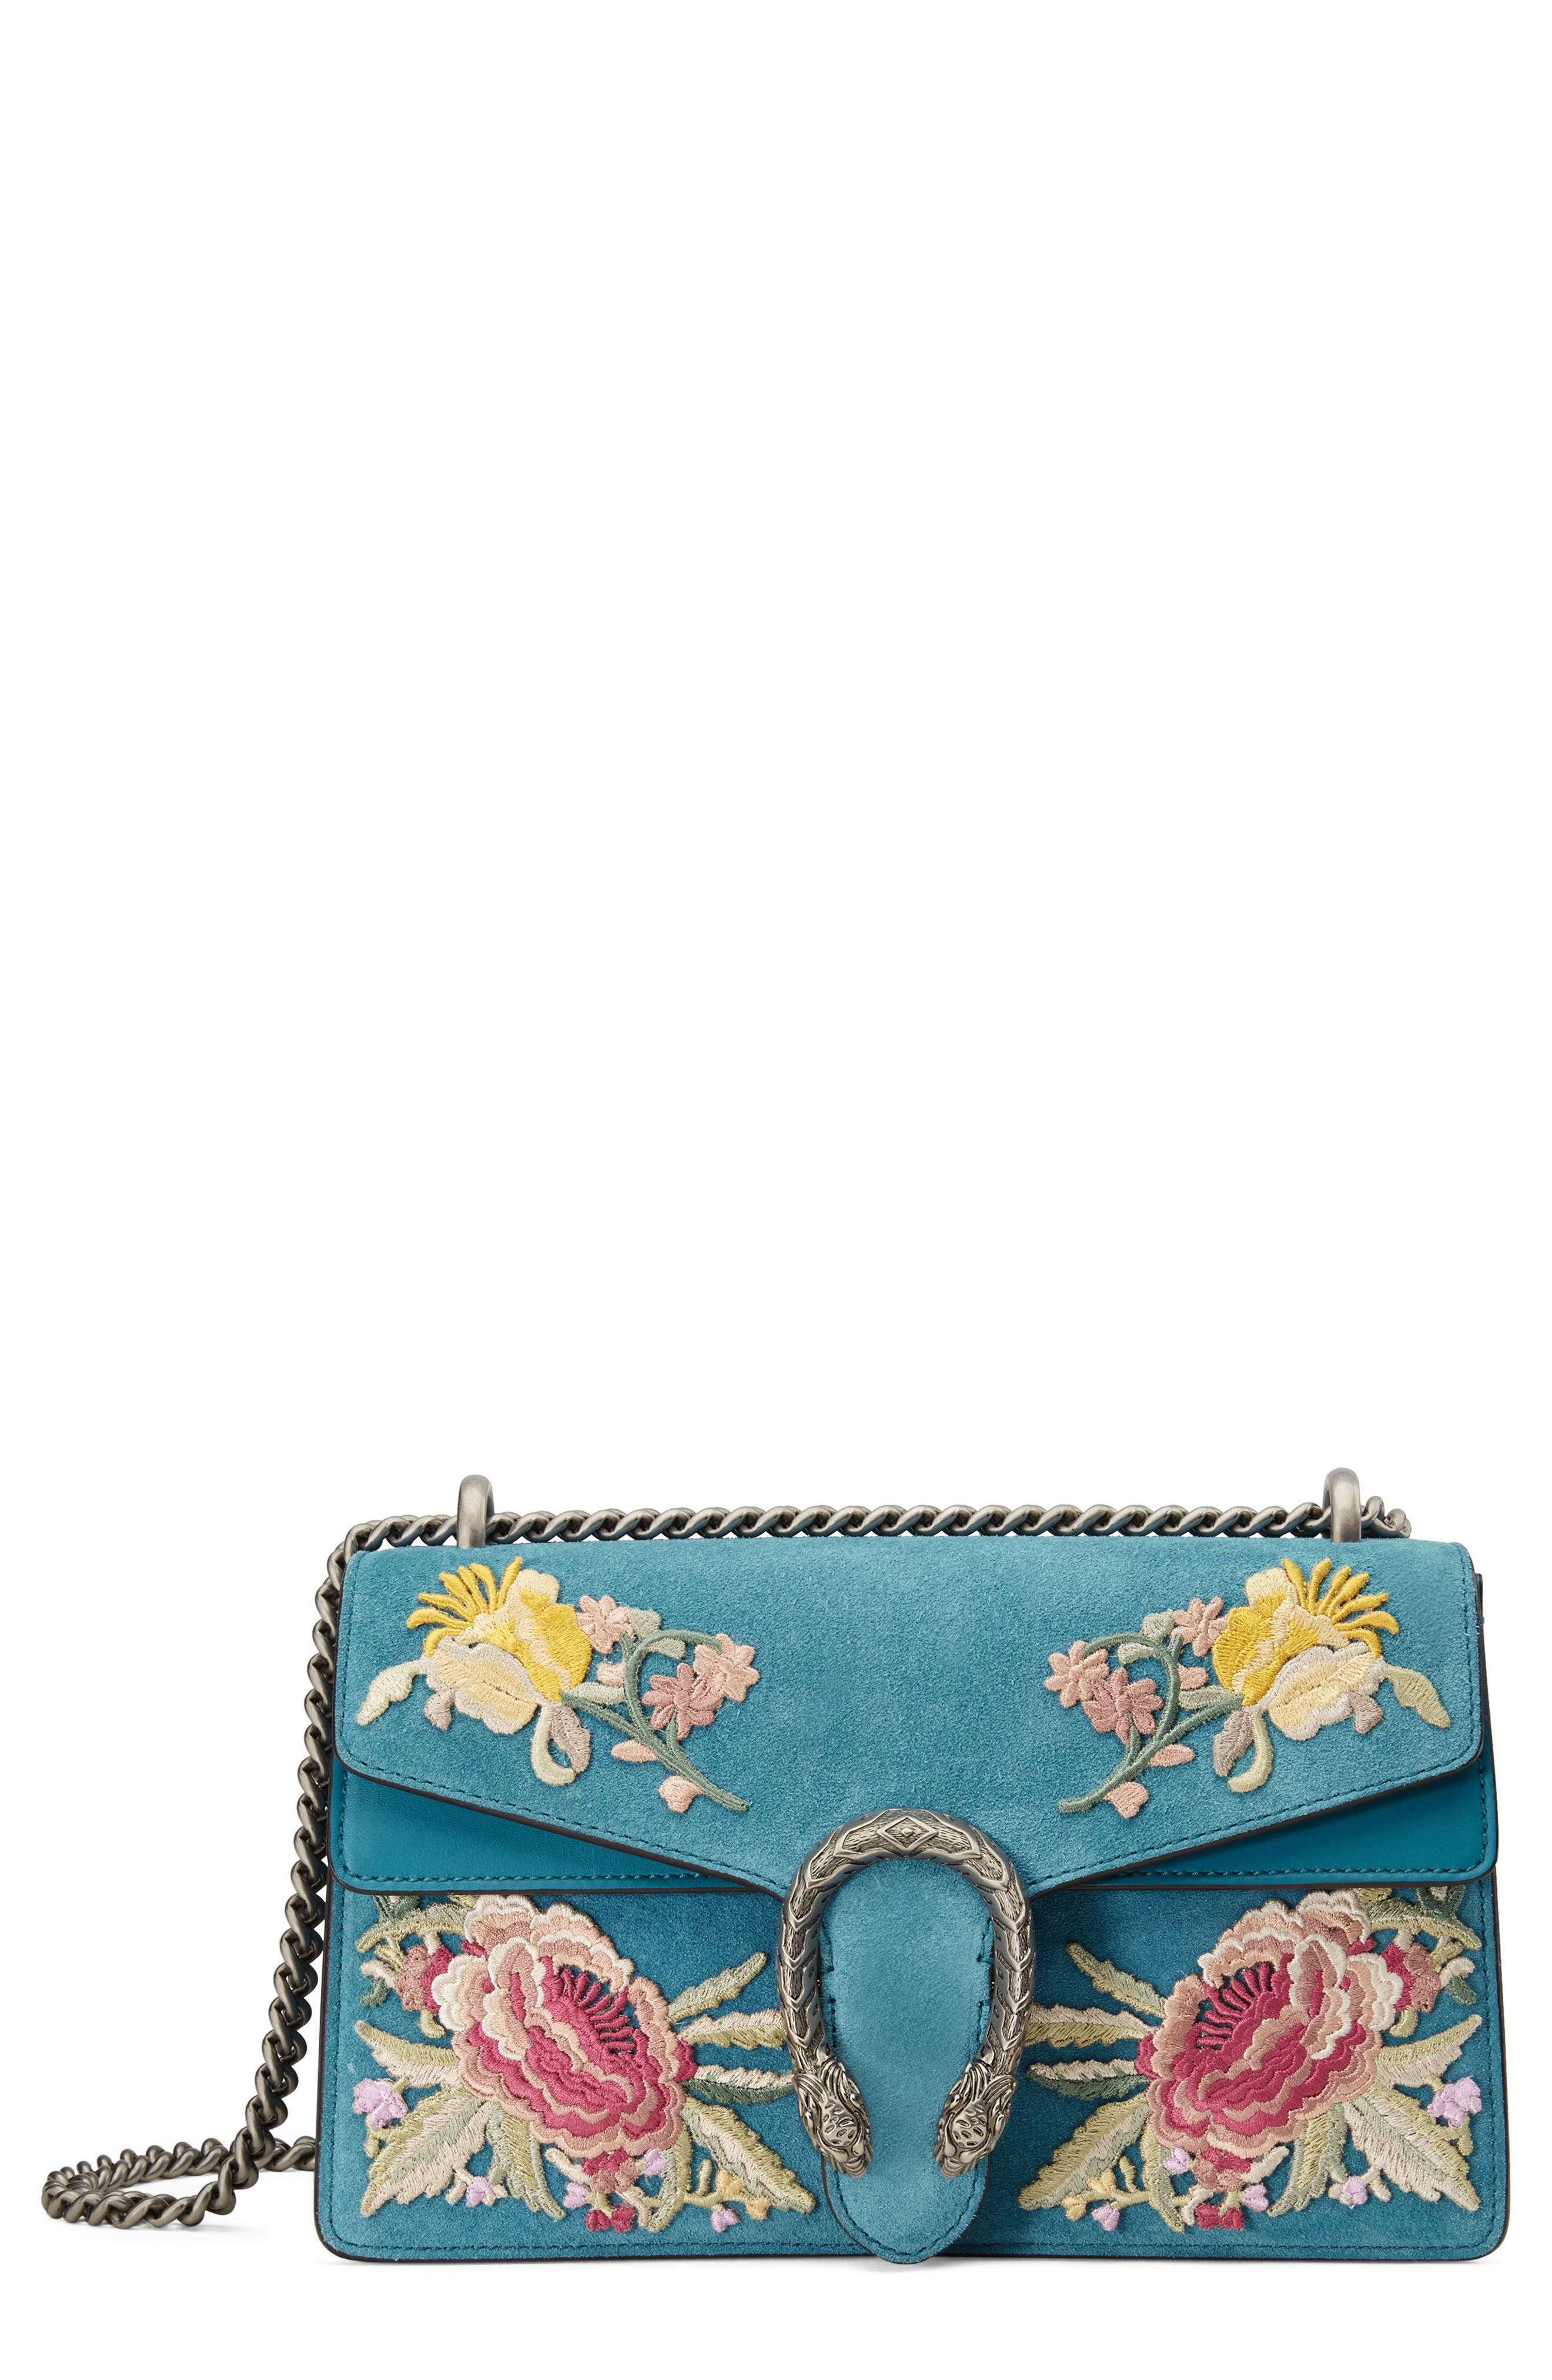 Small Dionysus Embroidered Suede Shoulder Bag,                         Main,                         color, Zaffiro/ Zaffiro Multi